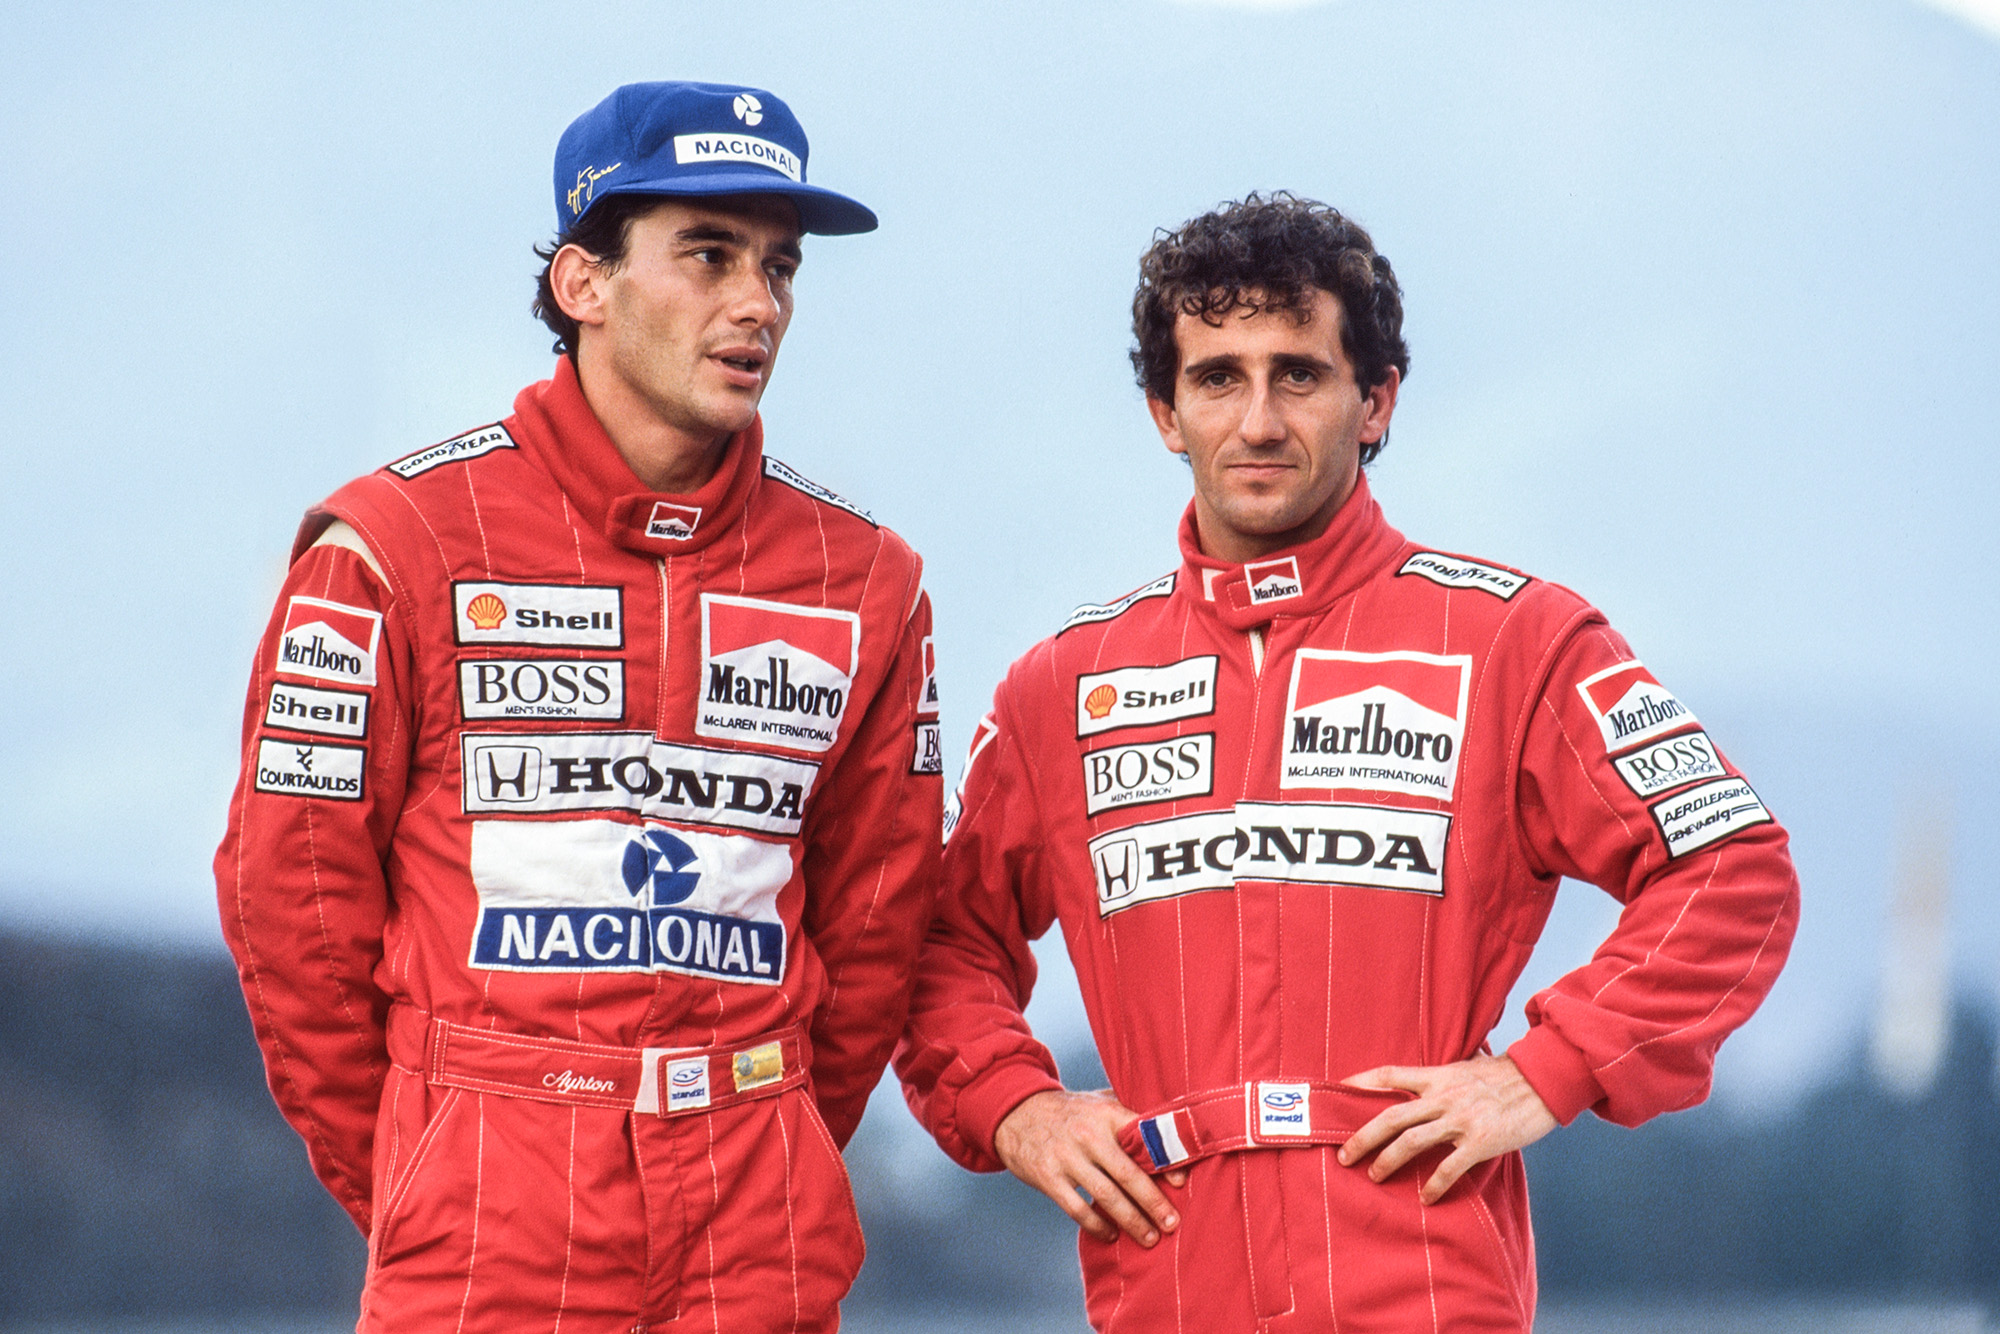 Ayrton Senna Alain Prost 1989 McLaren team photo